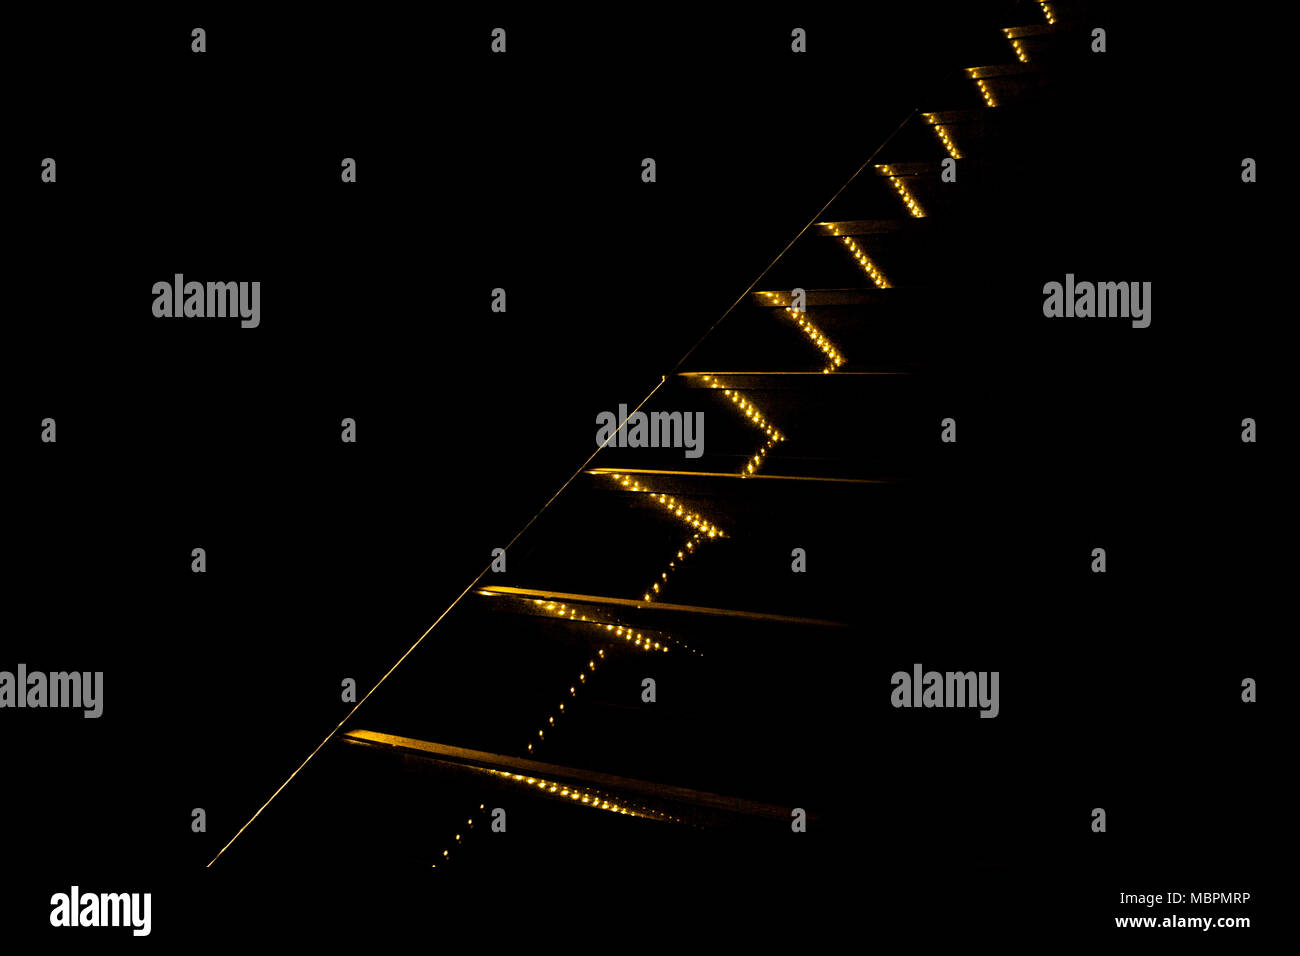 Contrast abstraction. Yellow lights and lines going diagonally upward on black background. - Stock Image